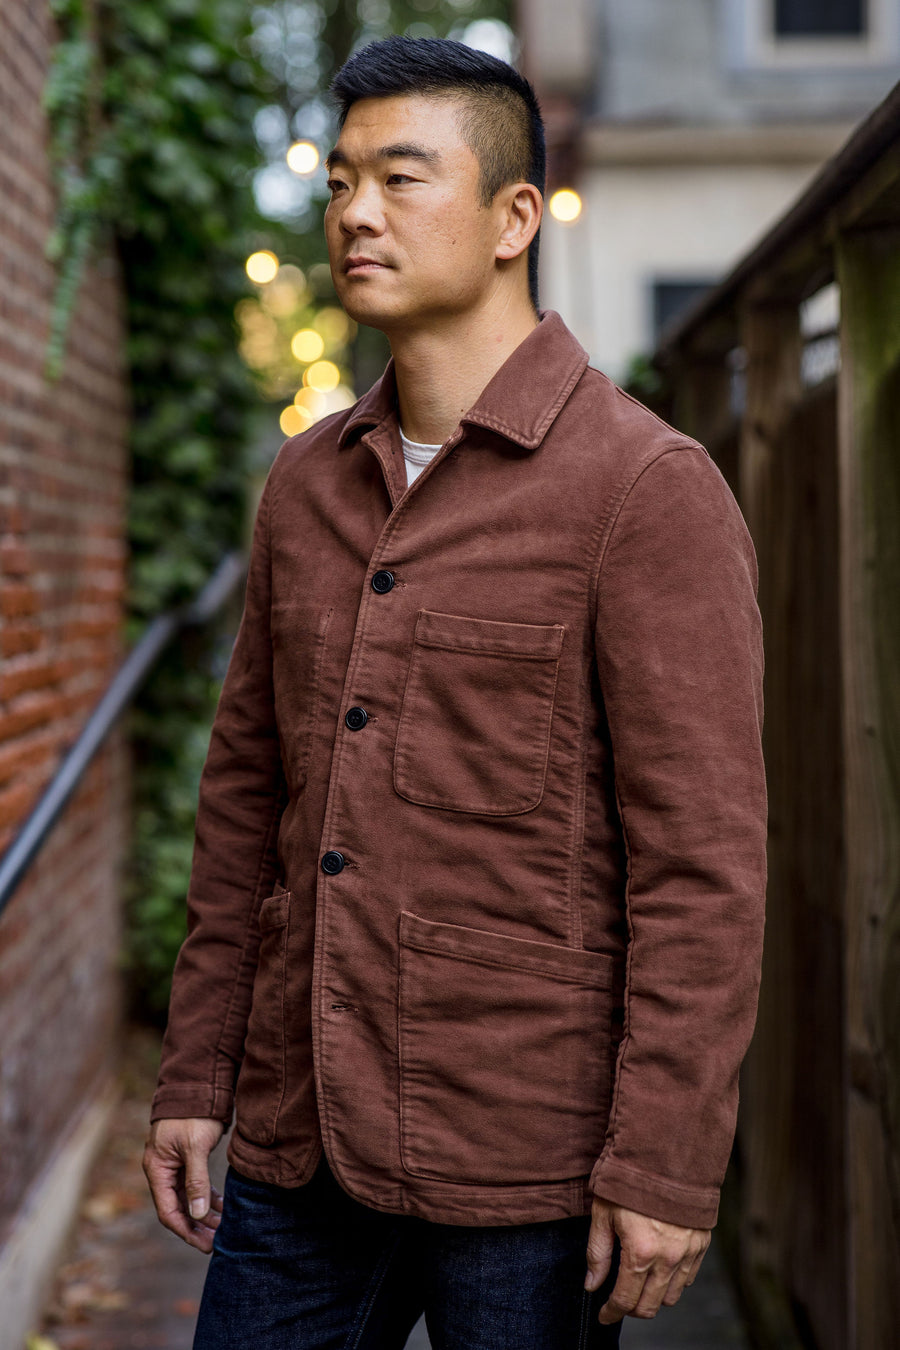 C.O.F. Studio Brewer Jacket - Brick Moleskin